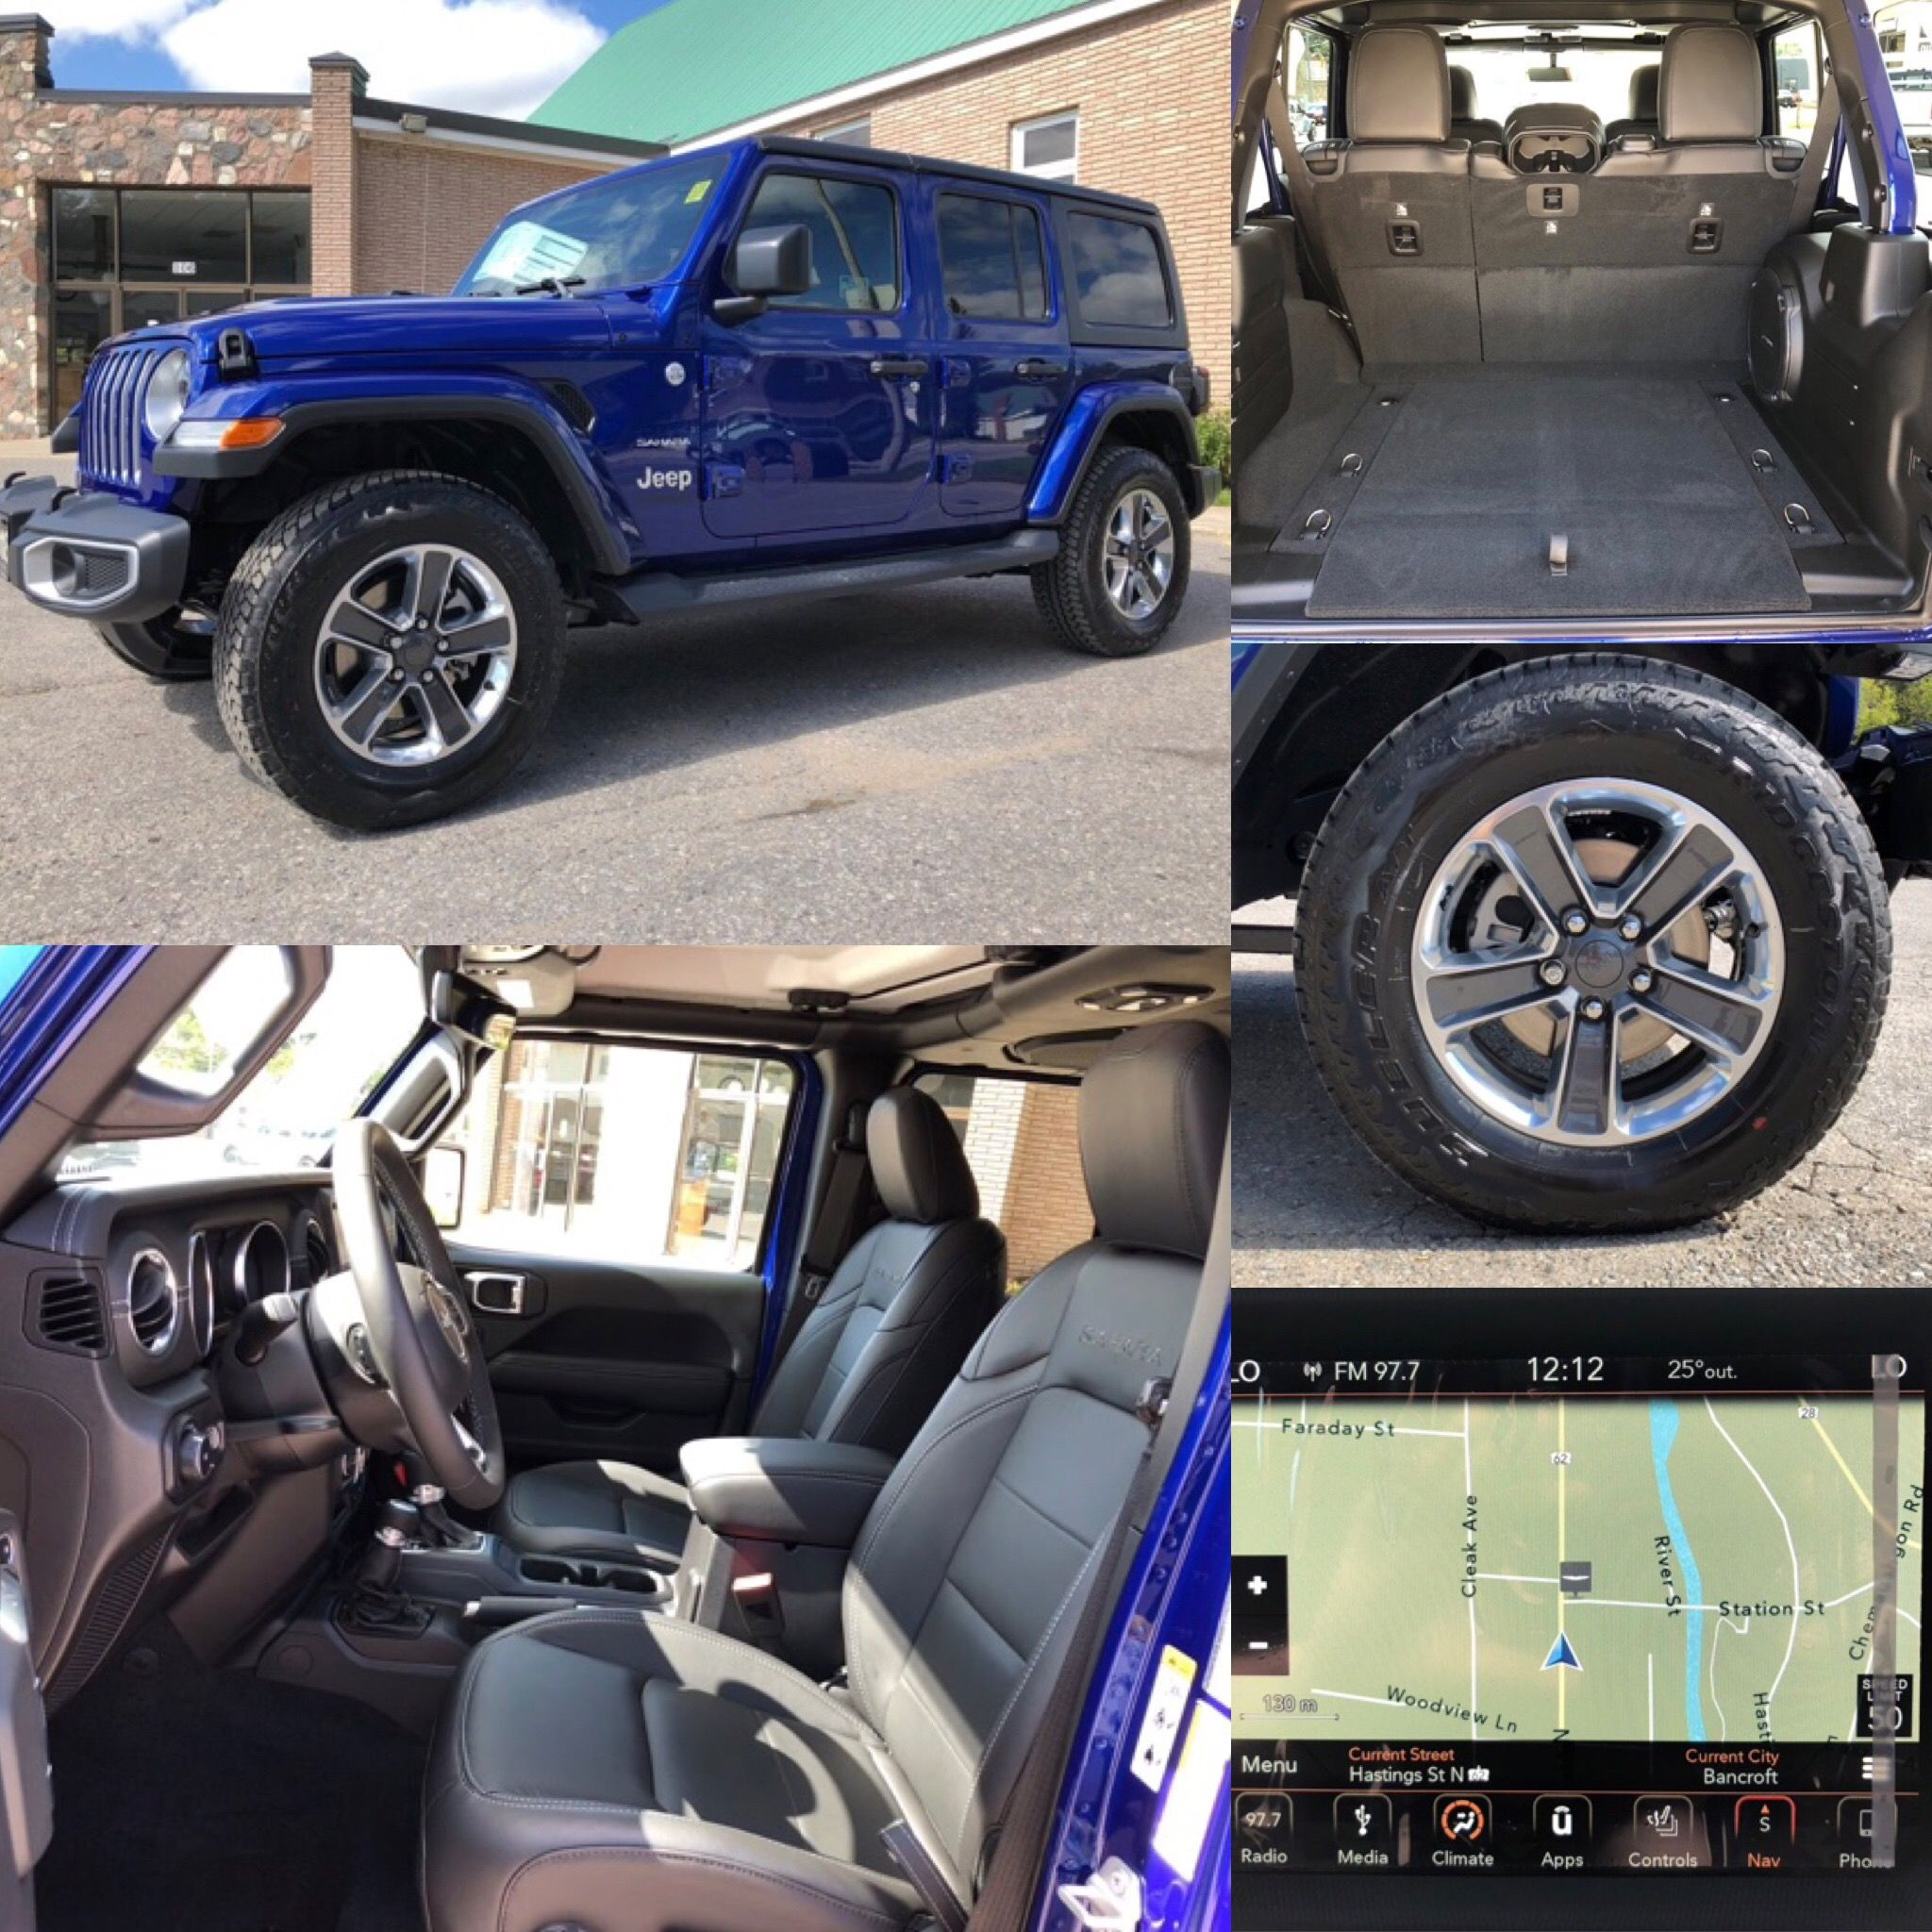 2019 Ocean Blue Metallic Jeep All New Wrangler Unlimited Sahara 4x4 Turbo Leather Nav Bluetooth Backup Cam Htd Blue Jeep Jeep Sahara Blue Jeep Wrangler